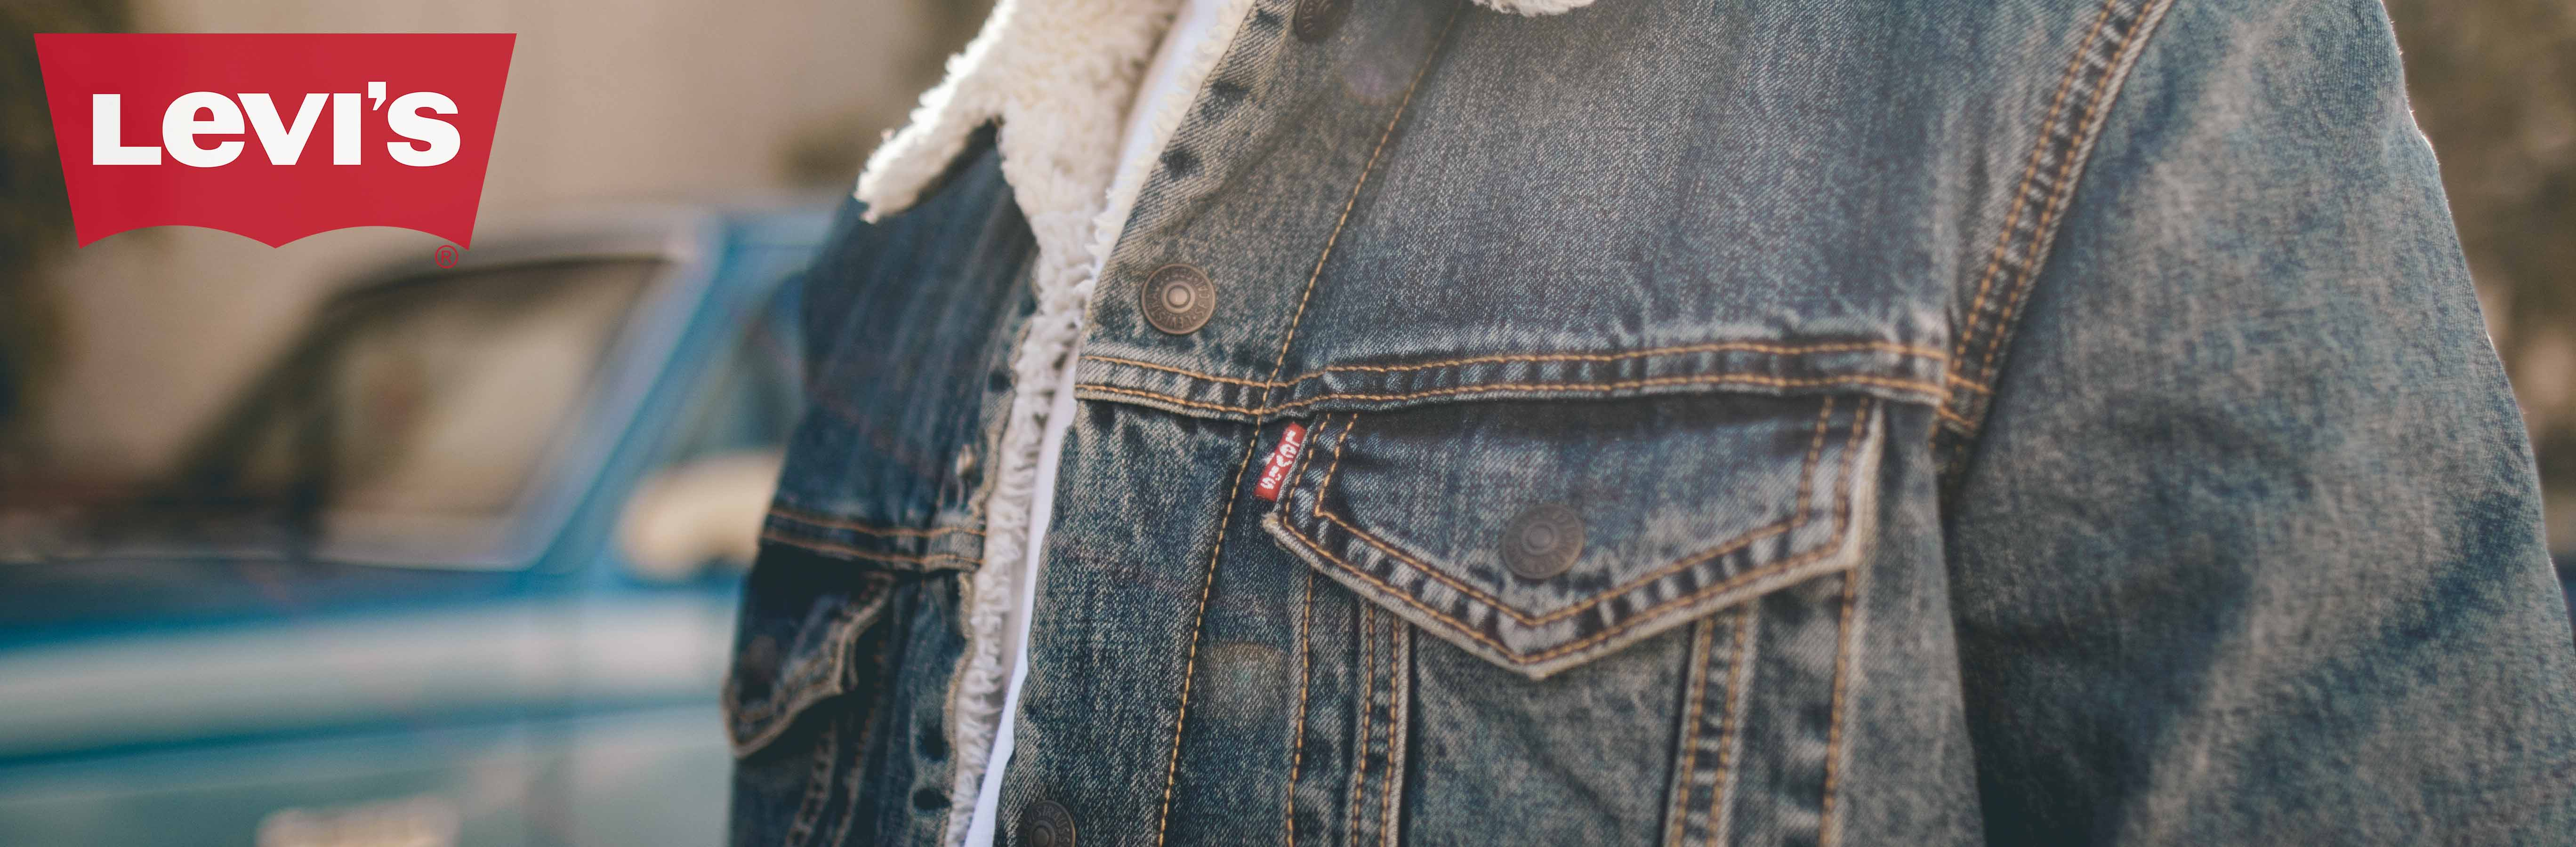 bf1ffd7d27 Levi s Jeans